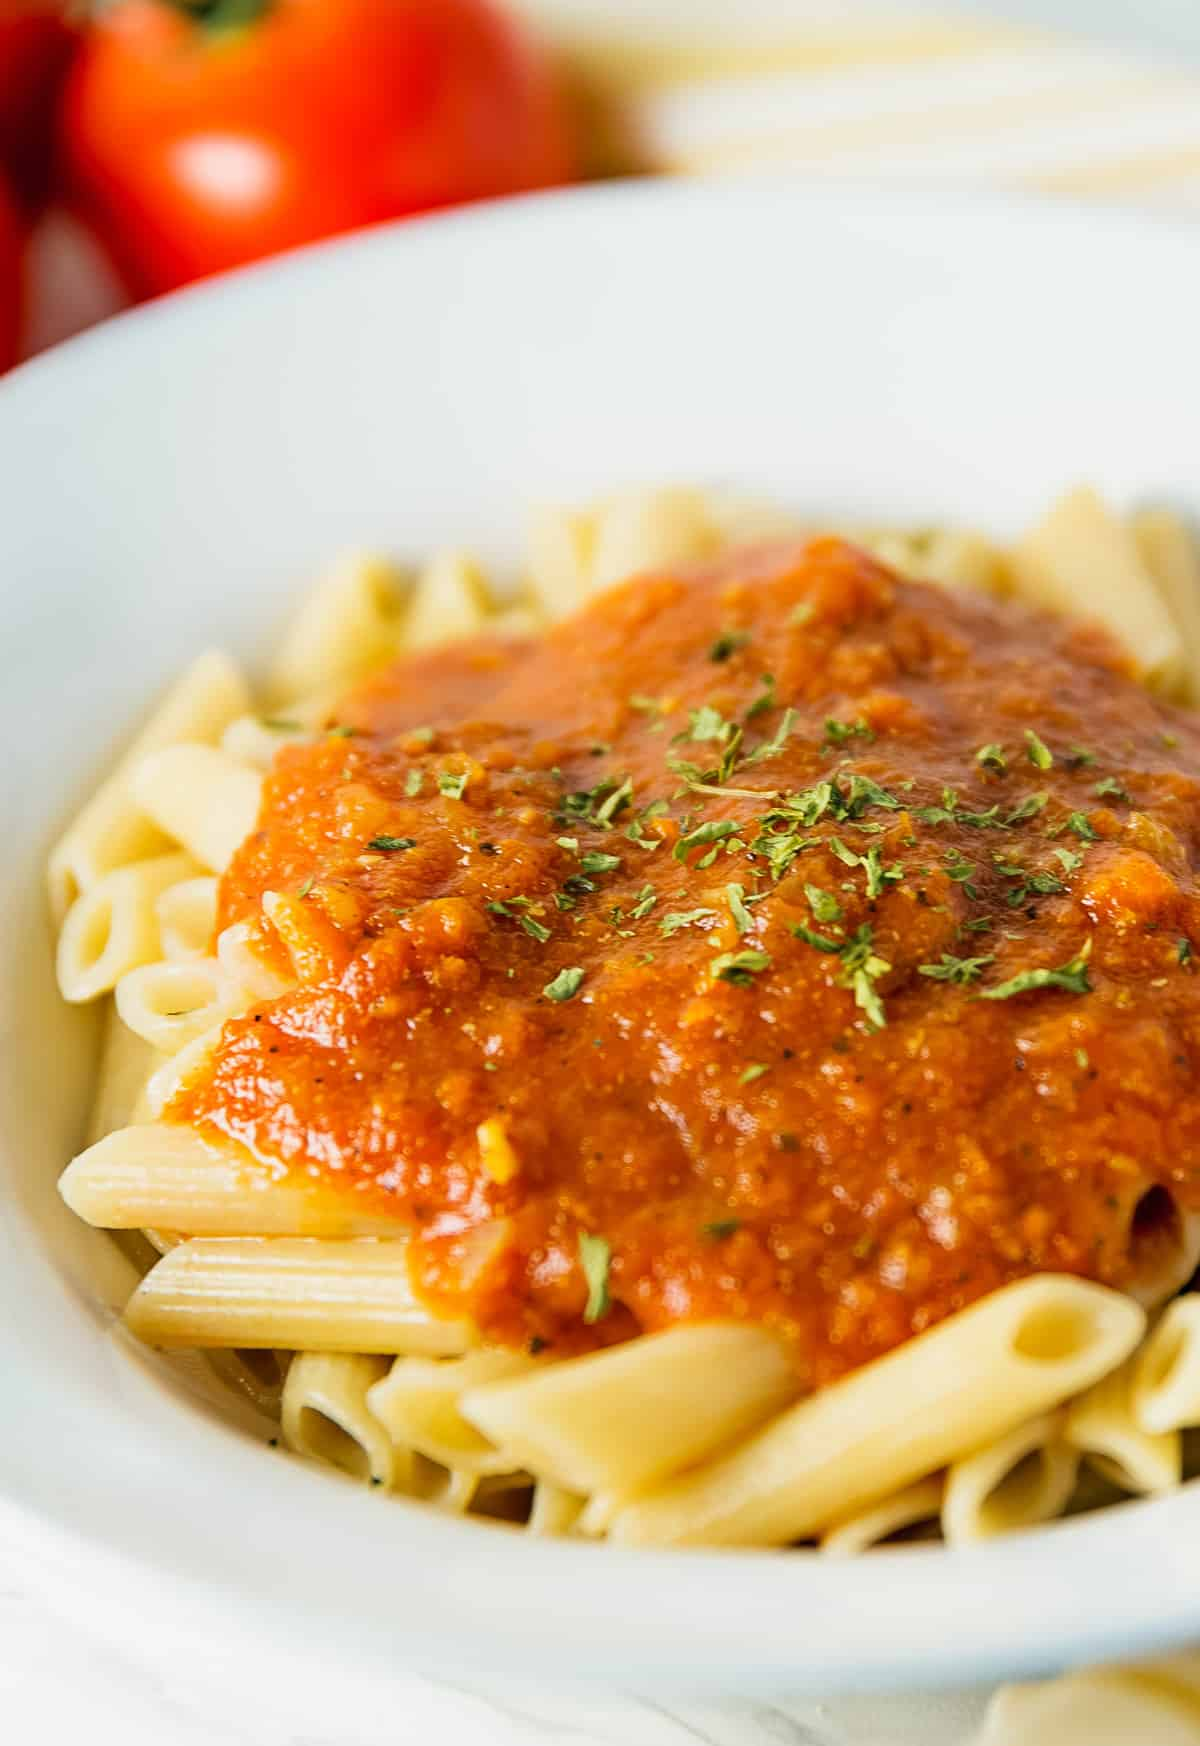 Italian pasta sauce, pasta sauce, marinara, red gravy, recipe, vegan, vegetarian, whole food plant based, wfpb, gluten free, oil free, refined sugar free, no oil, no refined sugar, no dairy, dinner, lunch, dinner party, entertaining, simple, healthy